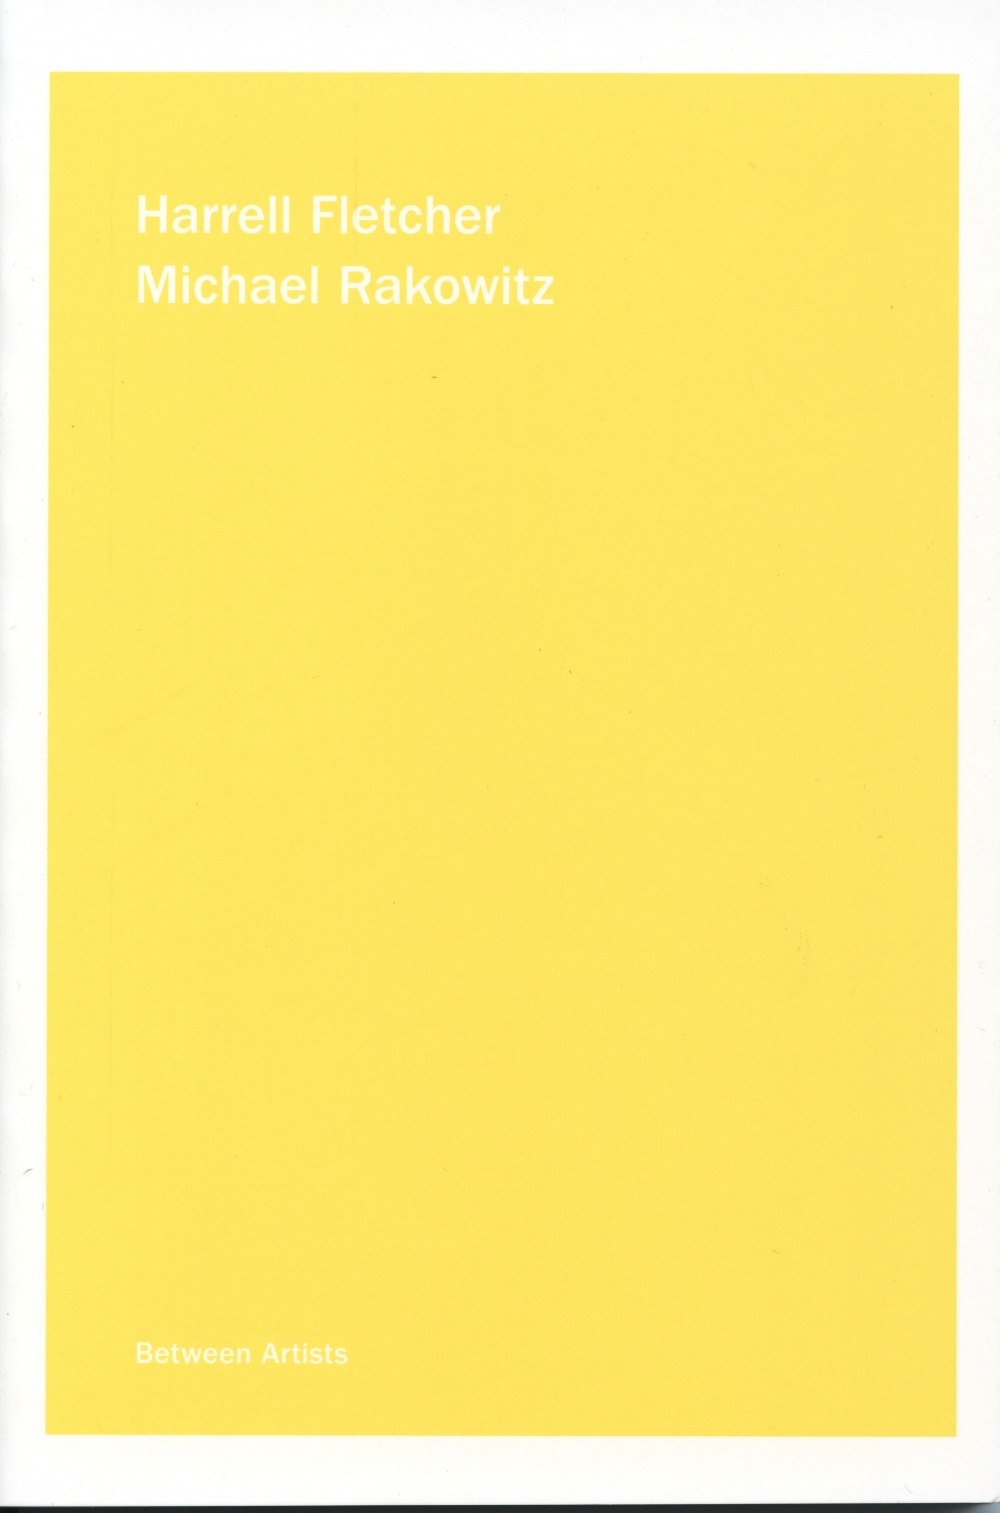 Harrell Fletcher / Michael Rakowitz